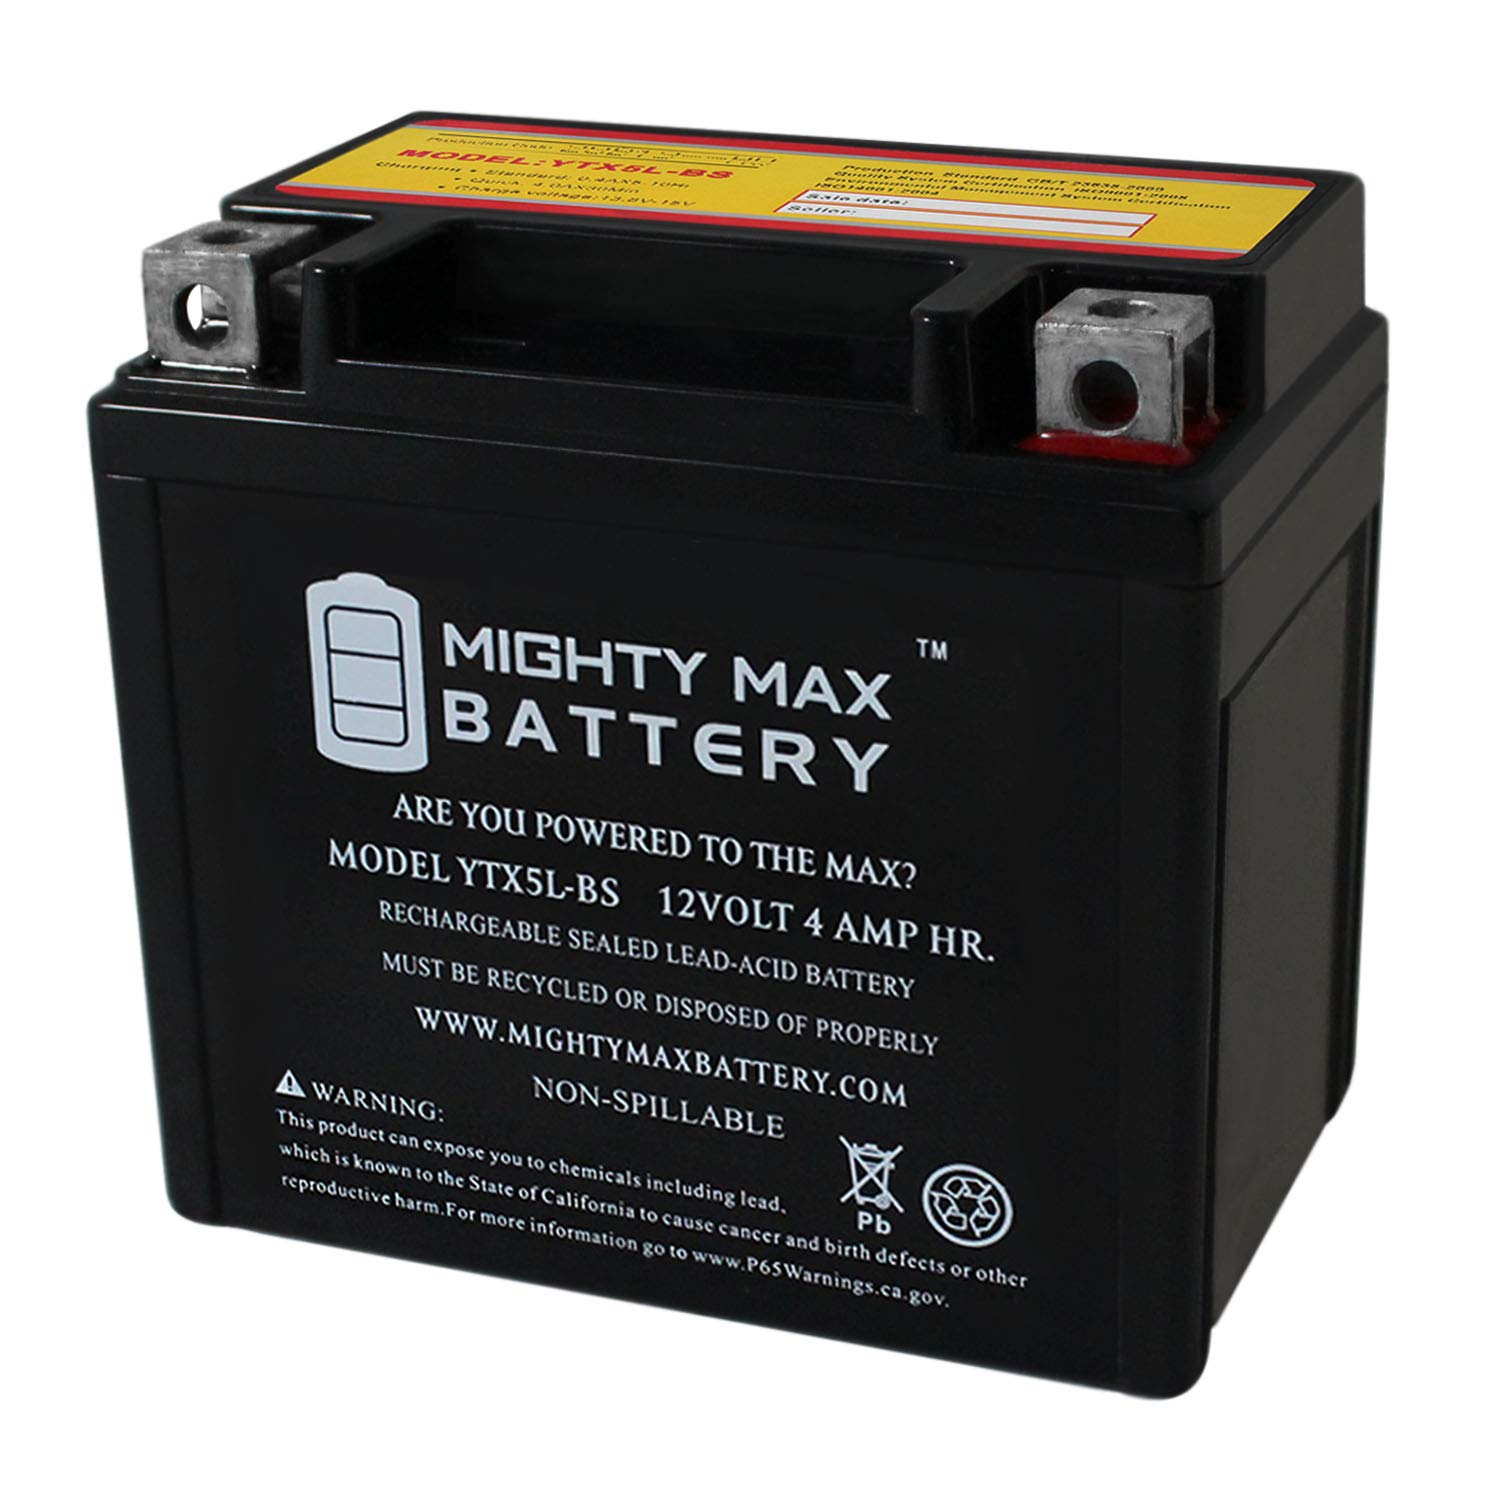 YTX5L-BS - 12V 4AH 80 CCA - SLA Power Sport Battery - Mighty Max Battery Brand Product